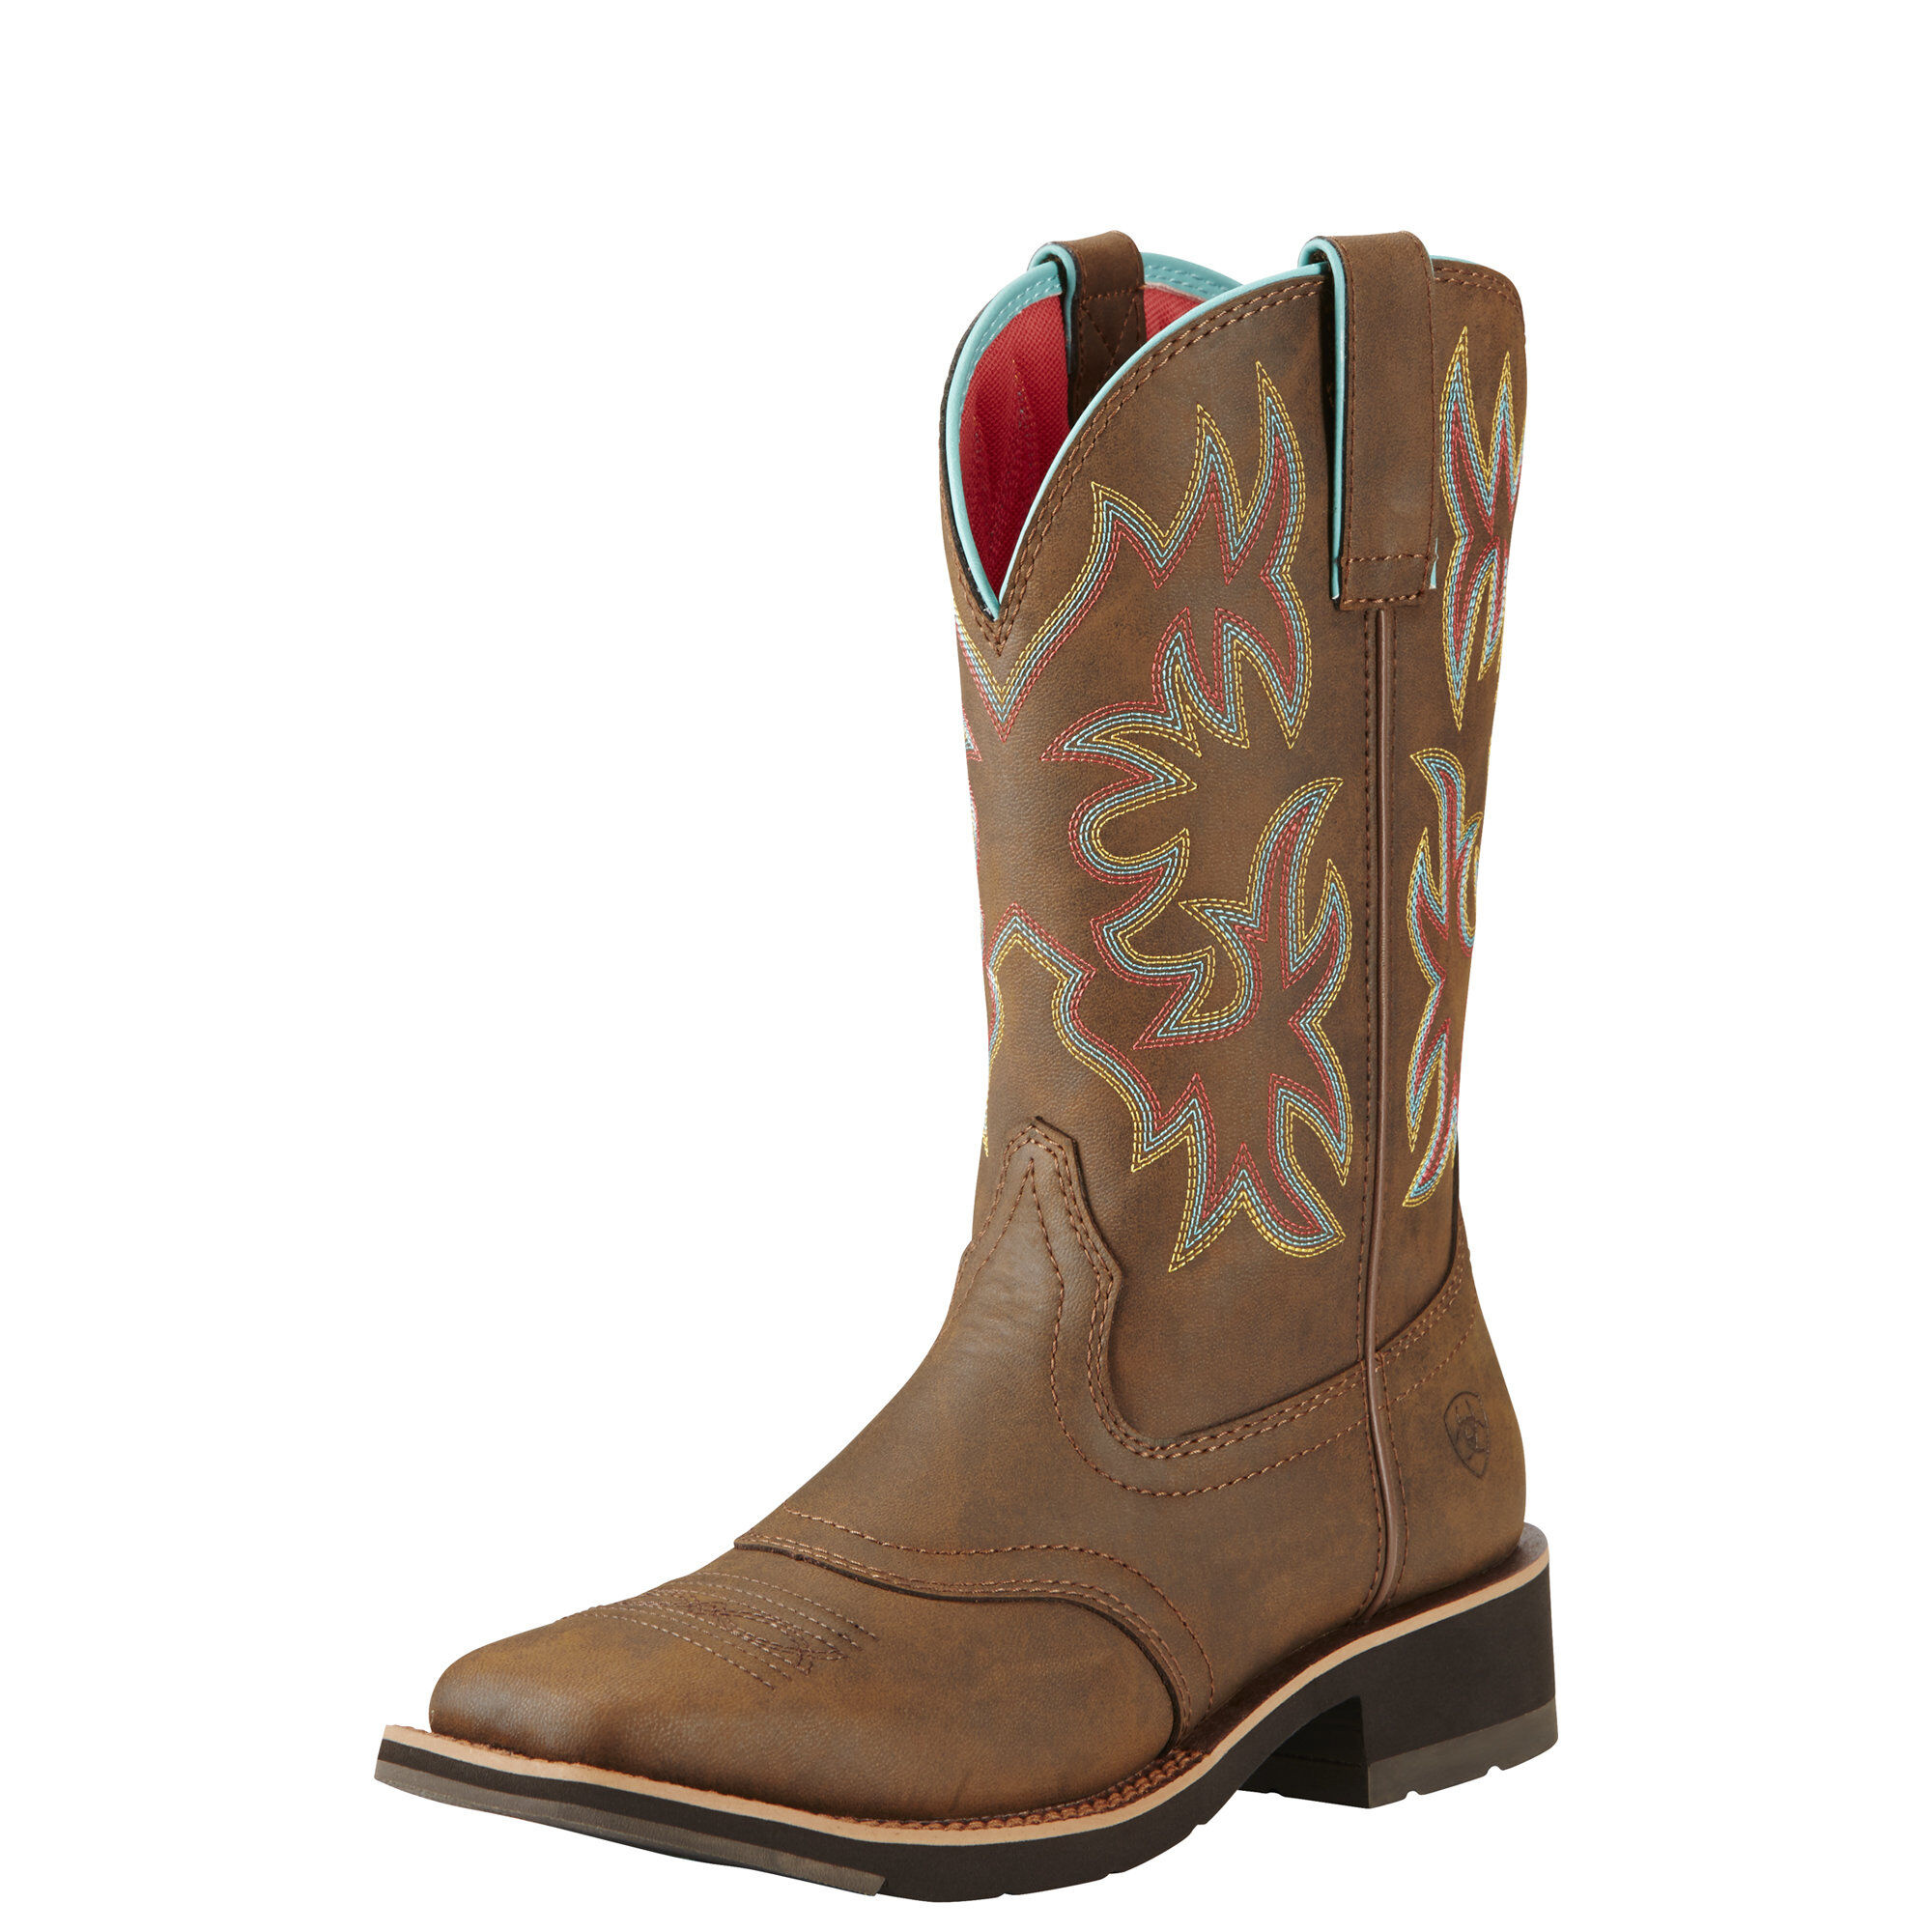 Women's Delilah Western Boots in Toasted Brown by Ariat